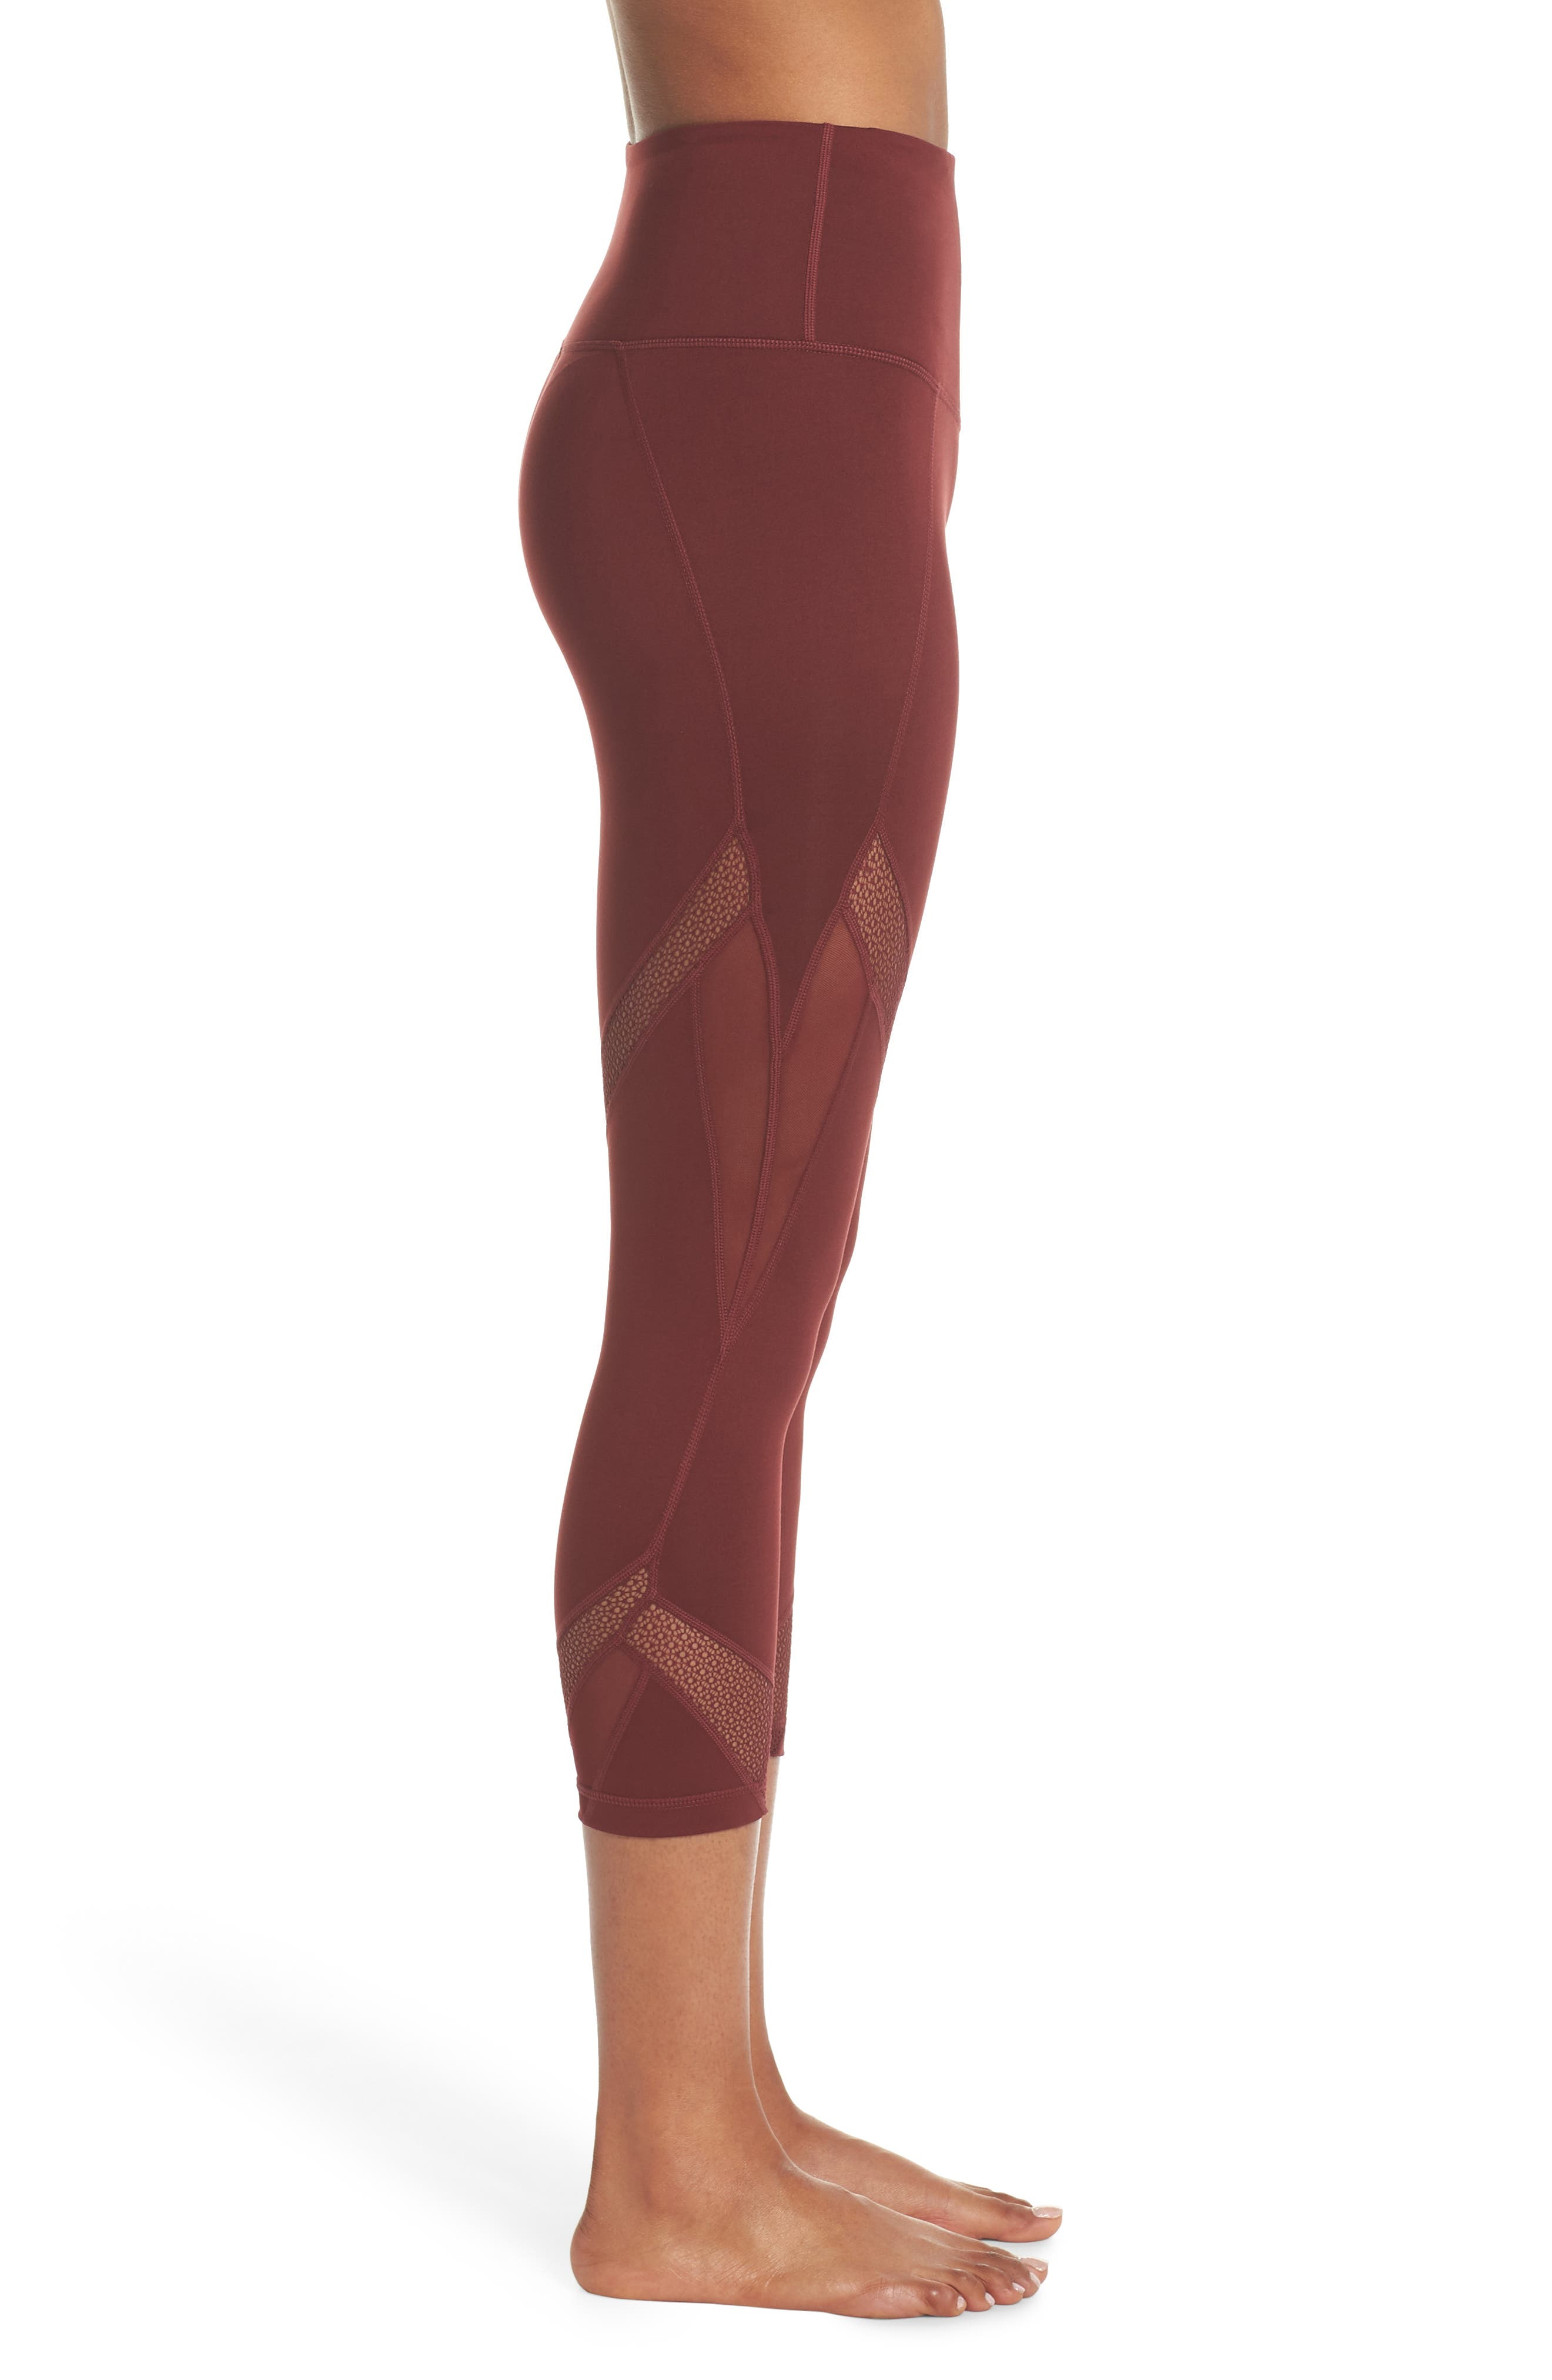 Moroccan High Waist Crop Leggings,                             Alternate thumbnail 3, color,                             RED TANNIN